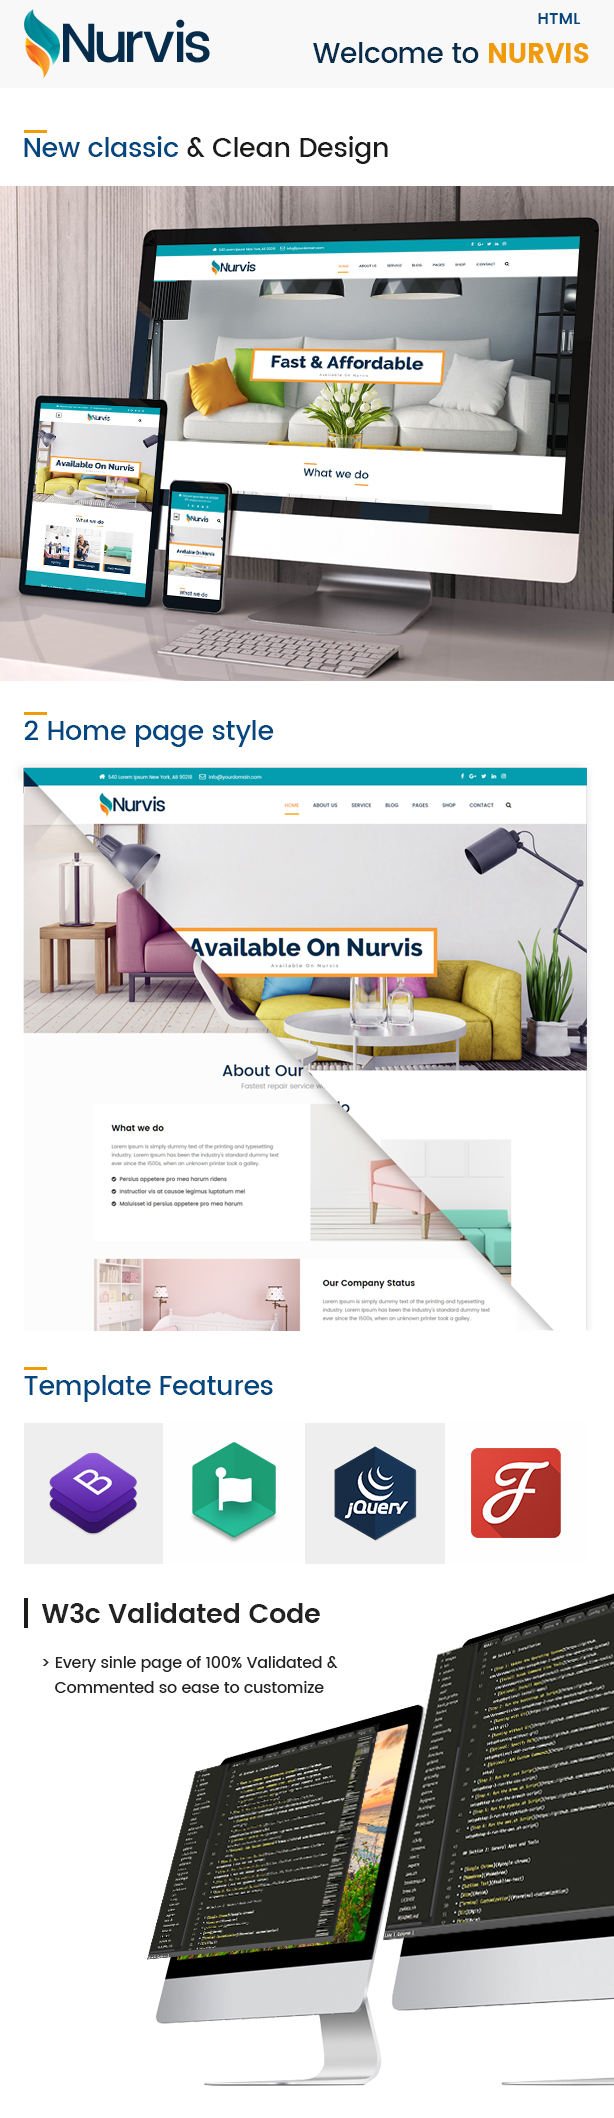 Nurvis - Furnitue Homestyle Bootstrap 4 Responsive HTML5 Template - 1